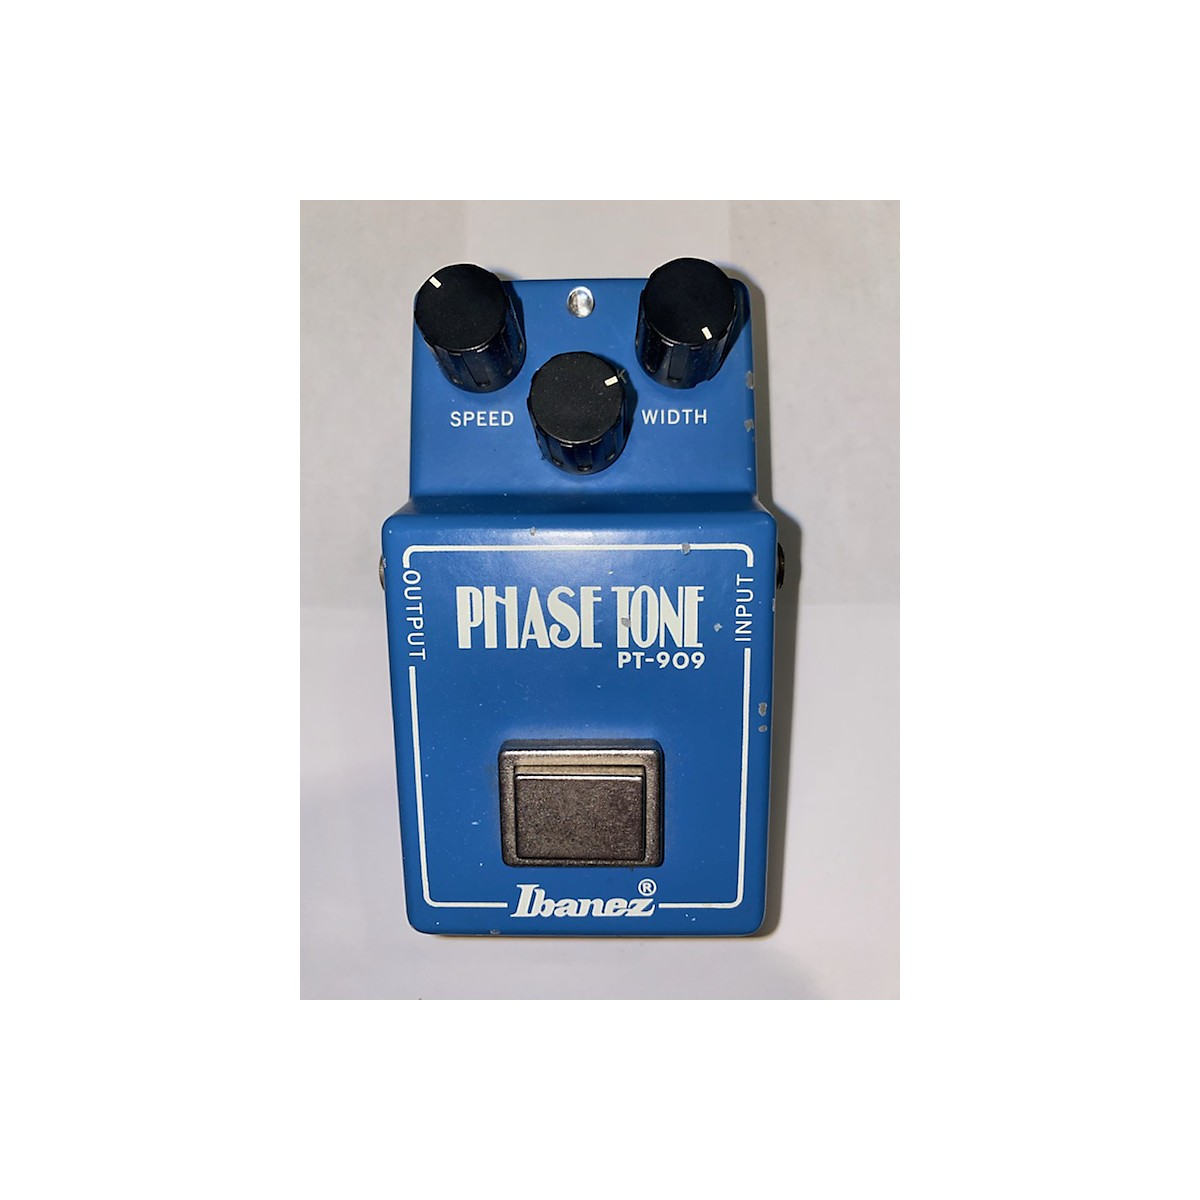 Ibanez 1980s Phase Tone Effect Pedal